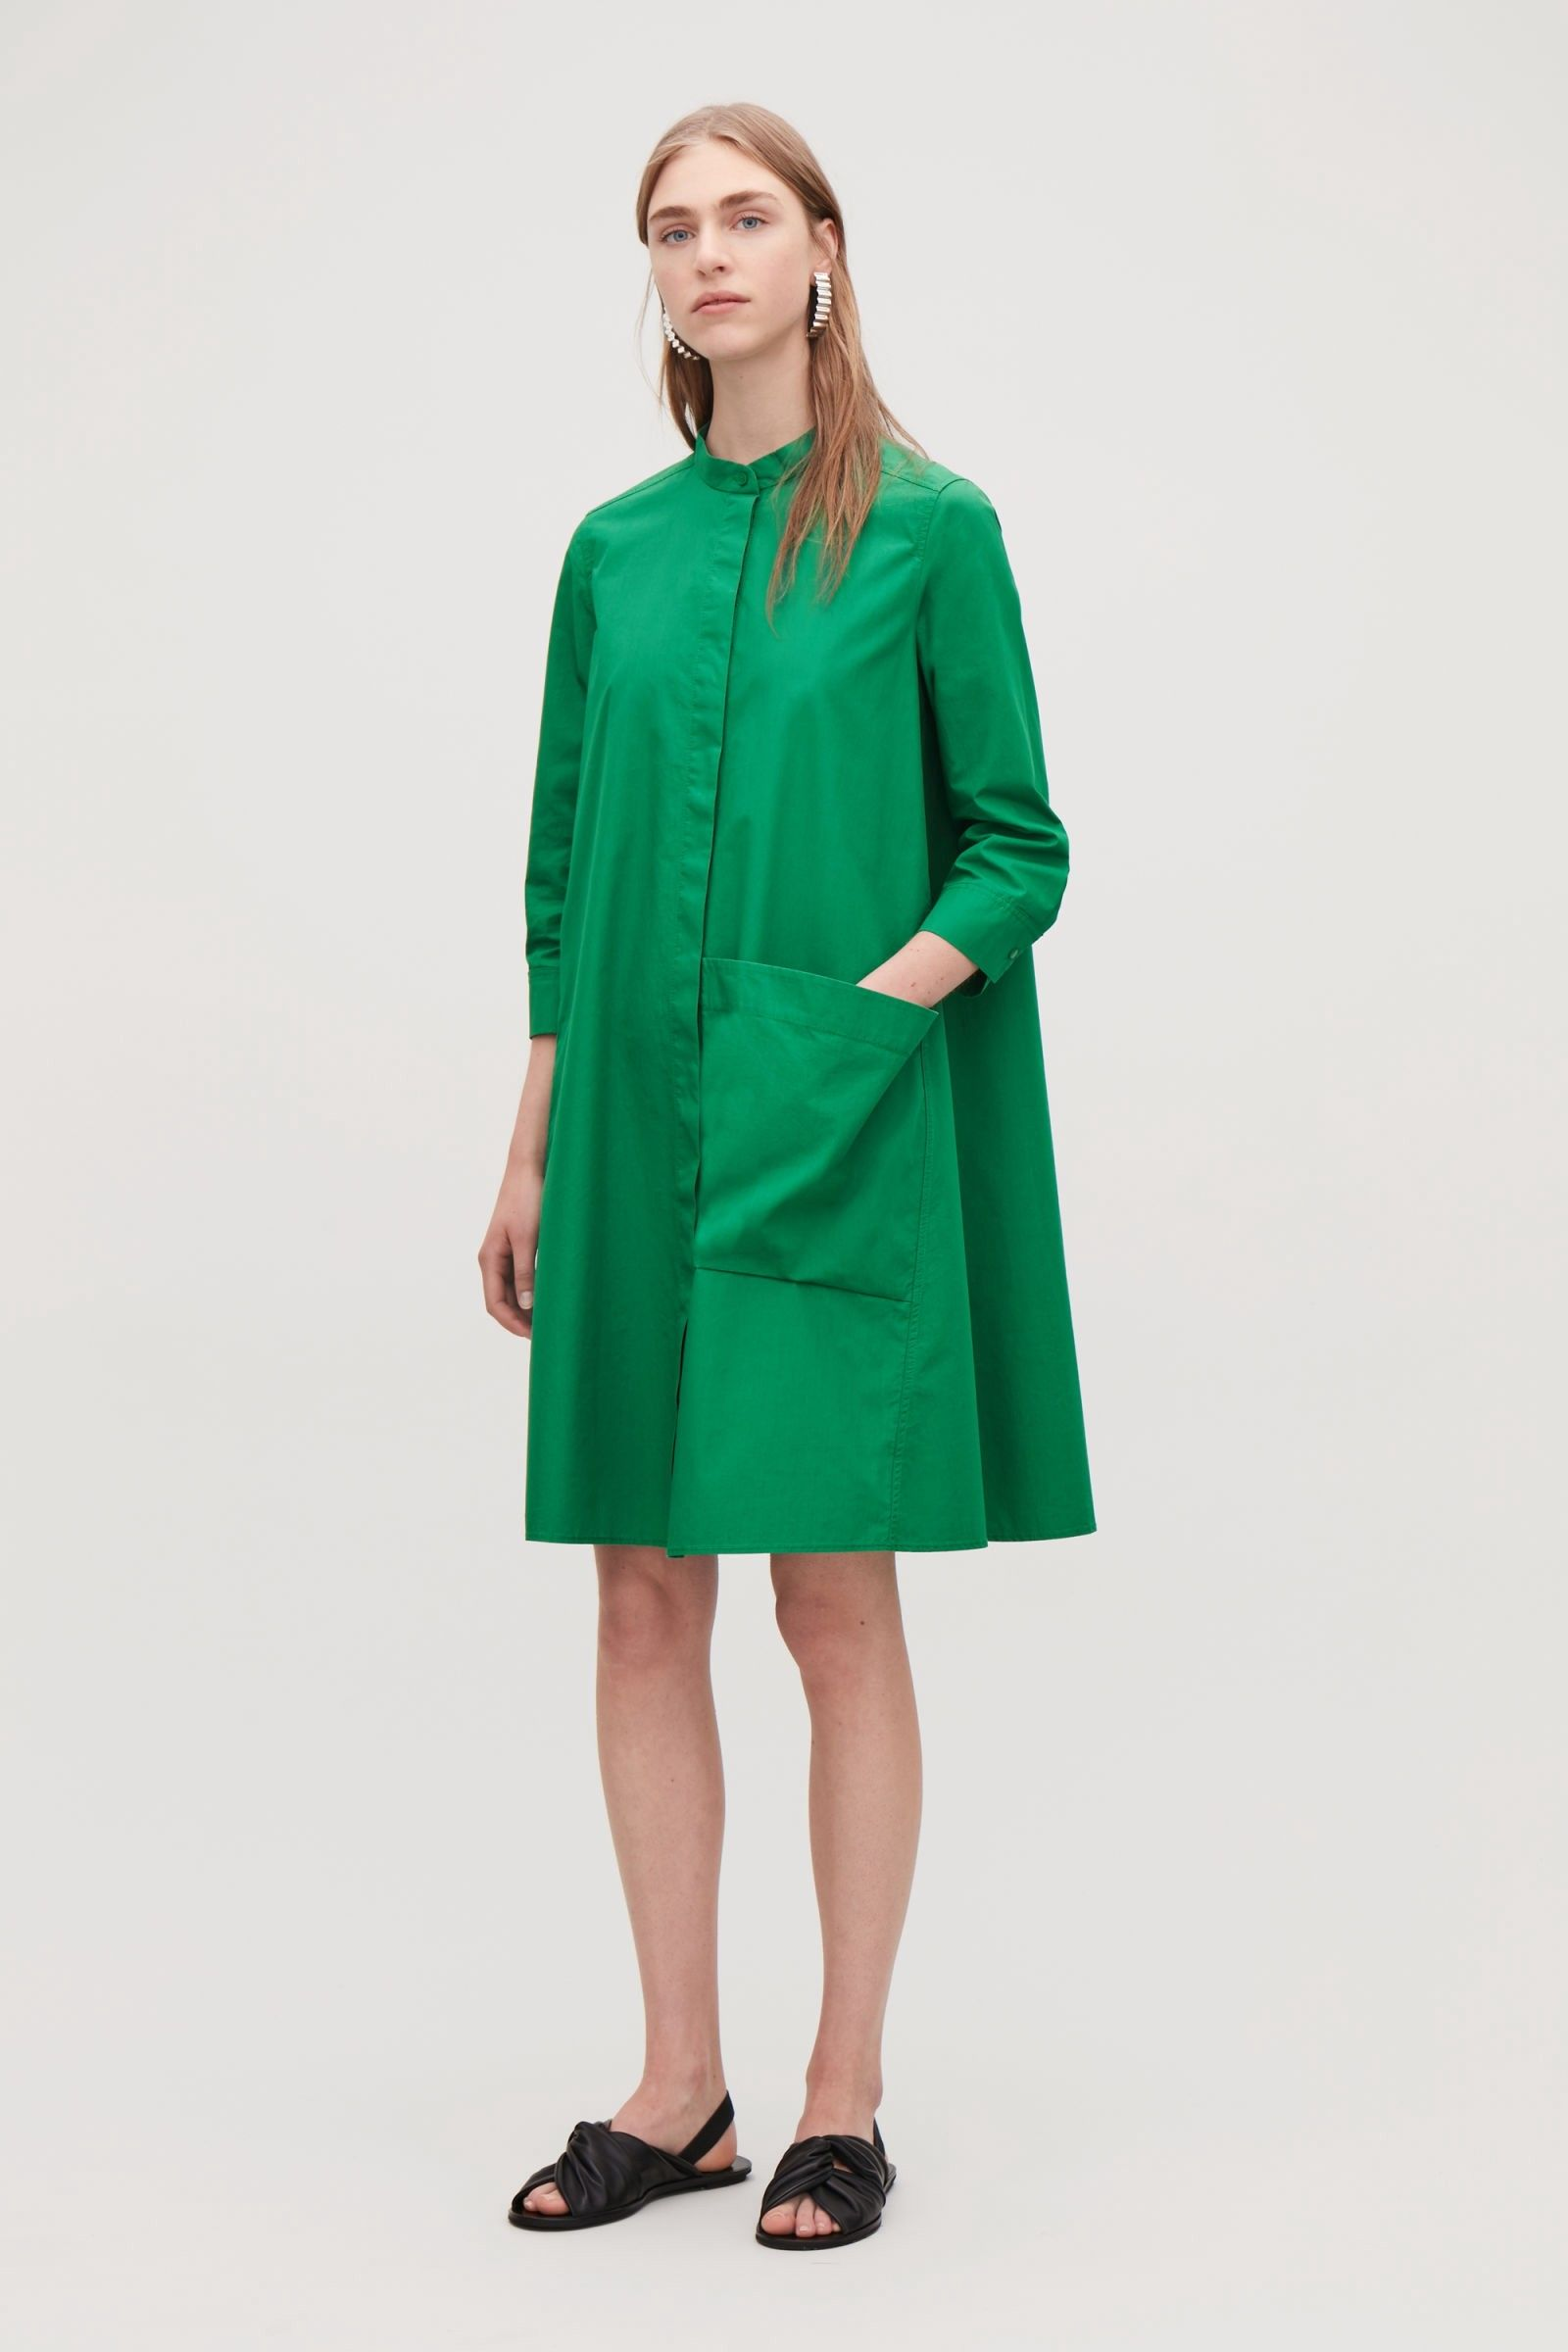 8a8647b496b48 SHIRT DRESS WITH LARGE POCKET - amazon green(OUT OF STOCK) by COS ...